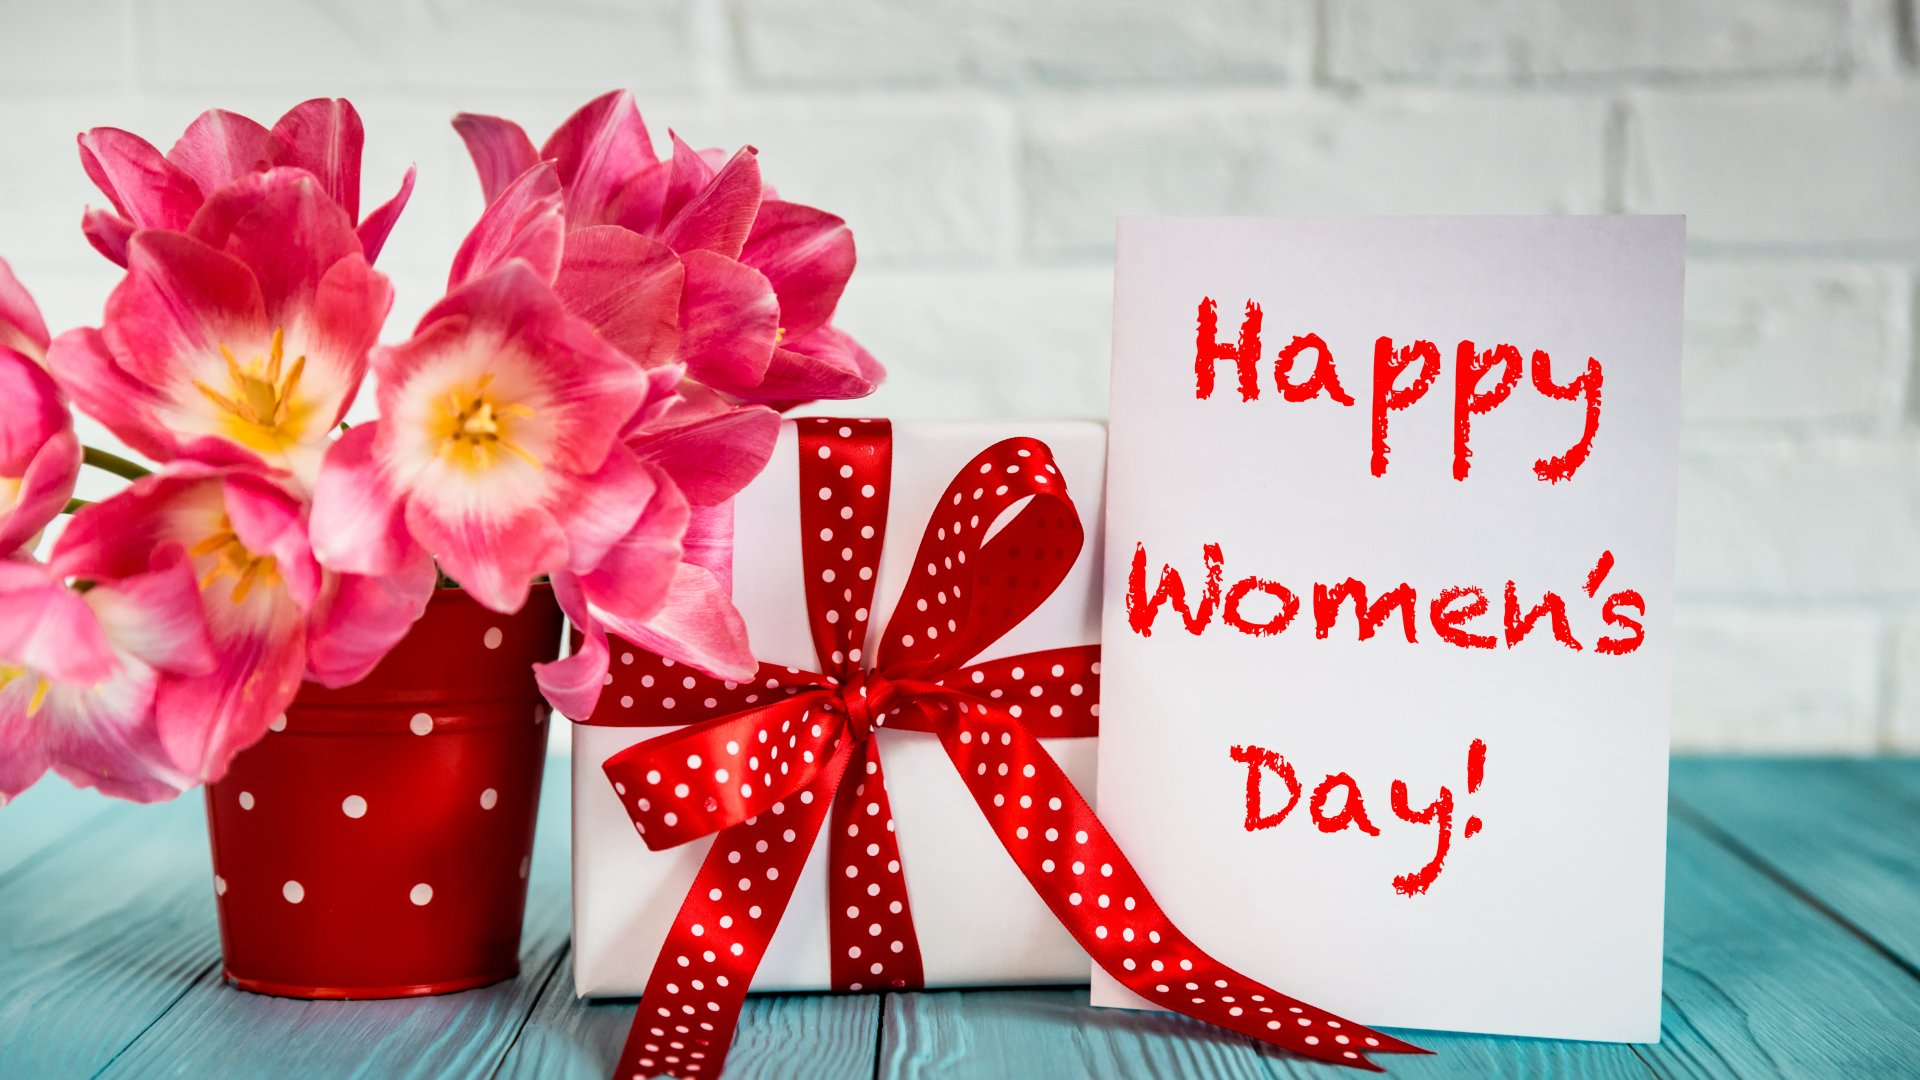 Happy Women's Day Wish Wallpaper HD 1920x1080